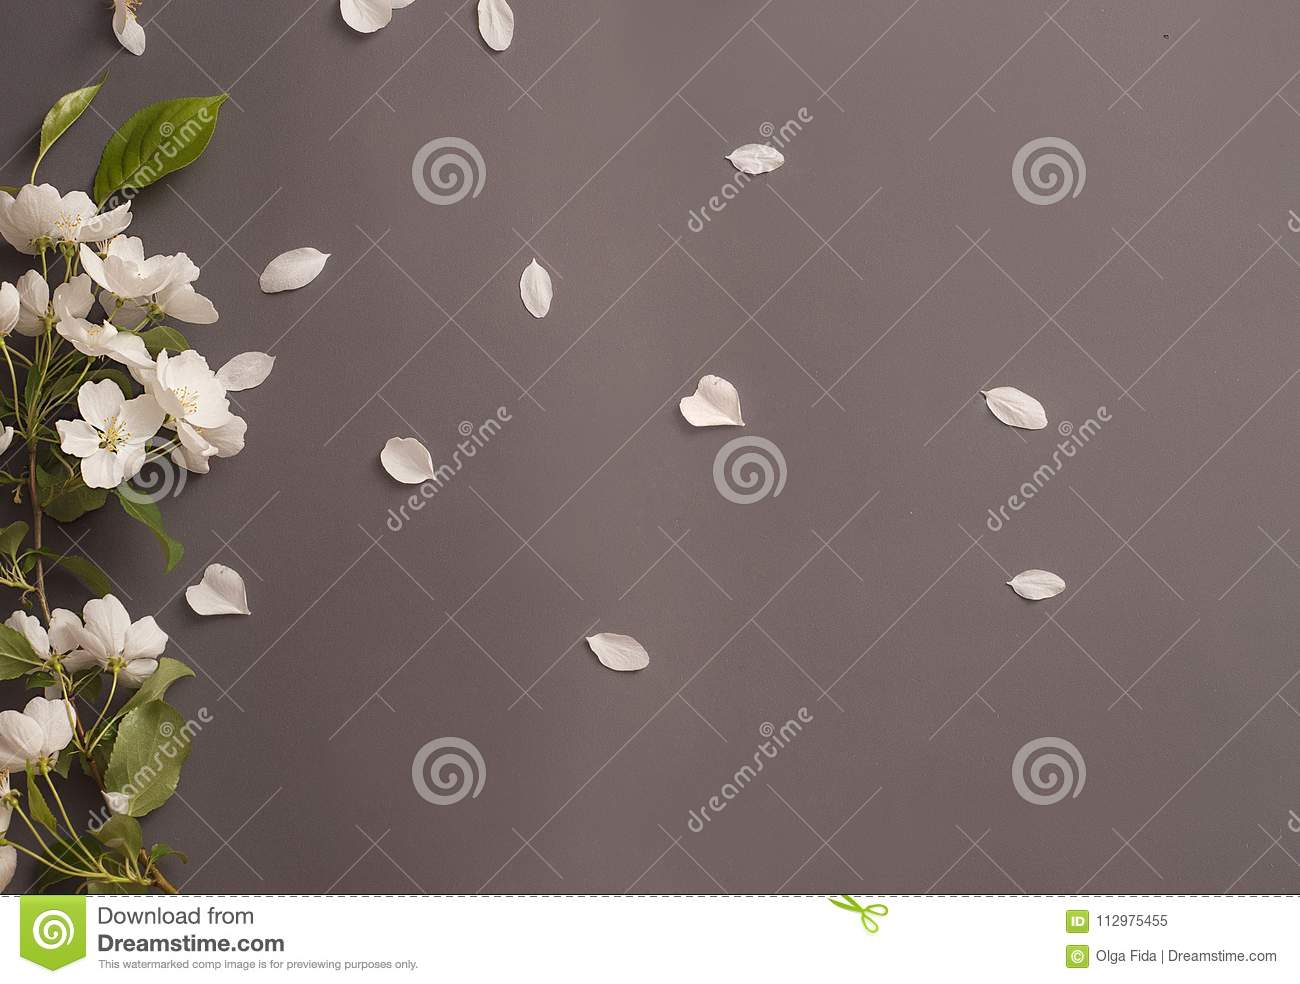 White Apple blossoms with green leaves